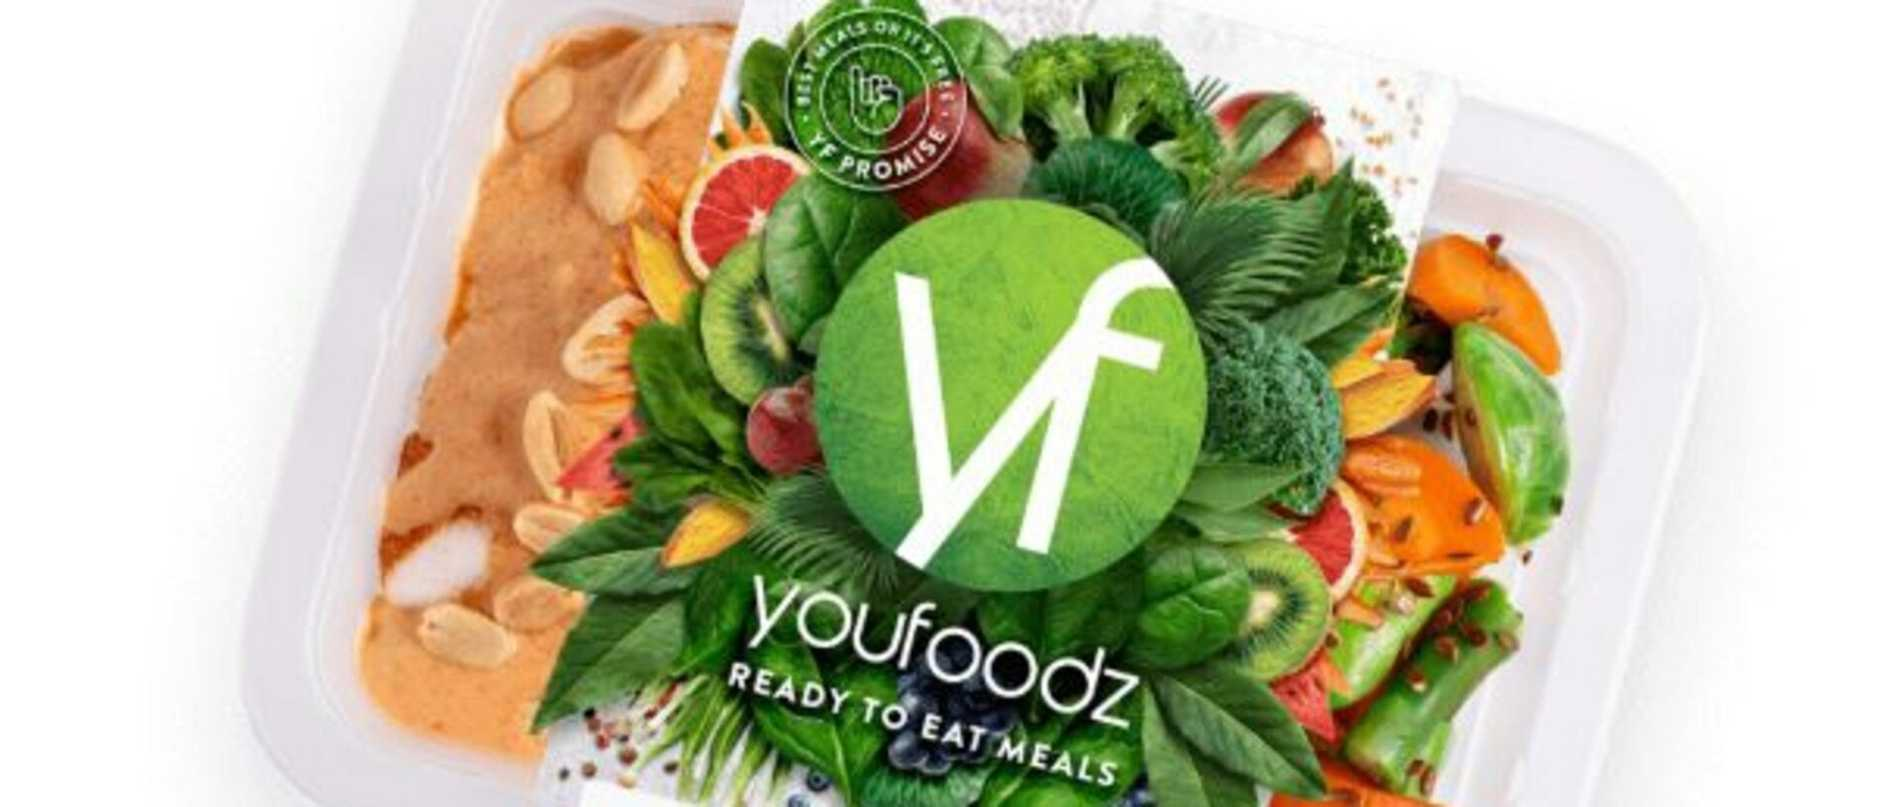 Some staff have accused Youfoodz of failing to pay super.